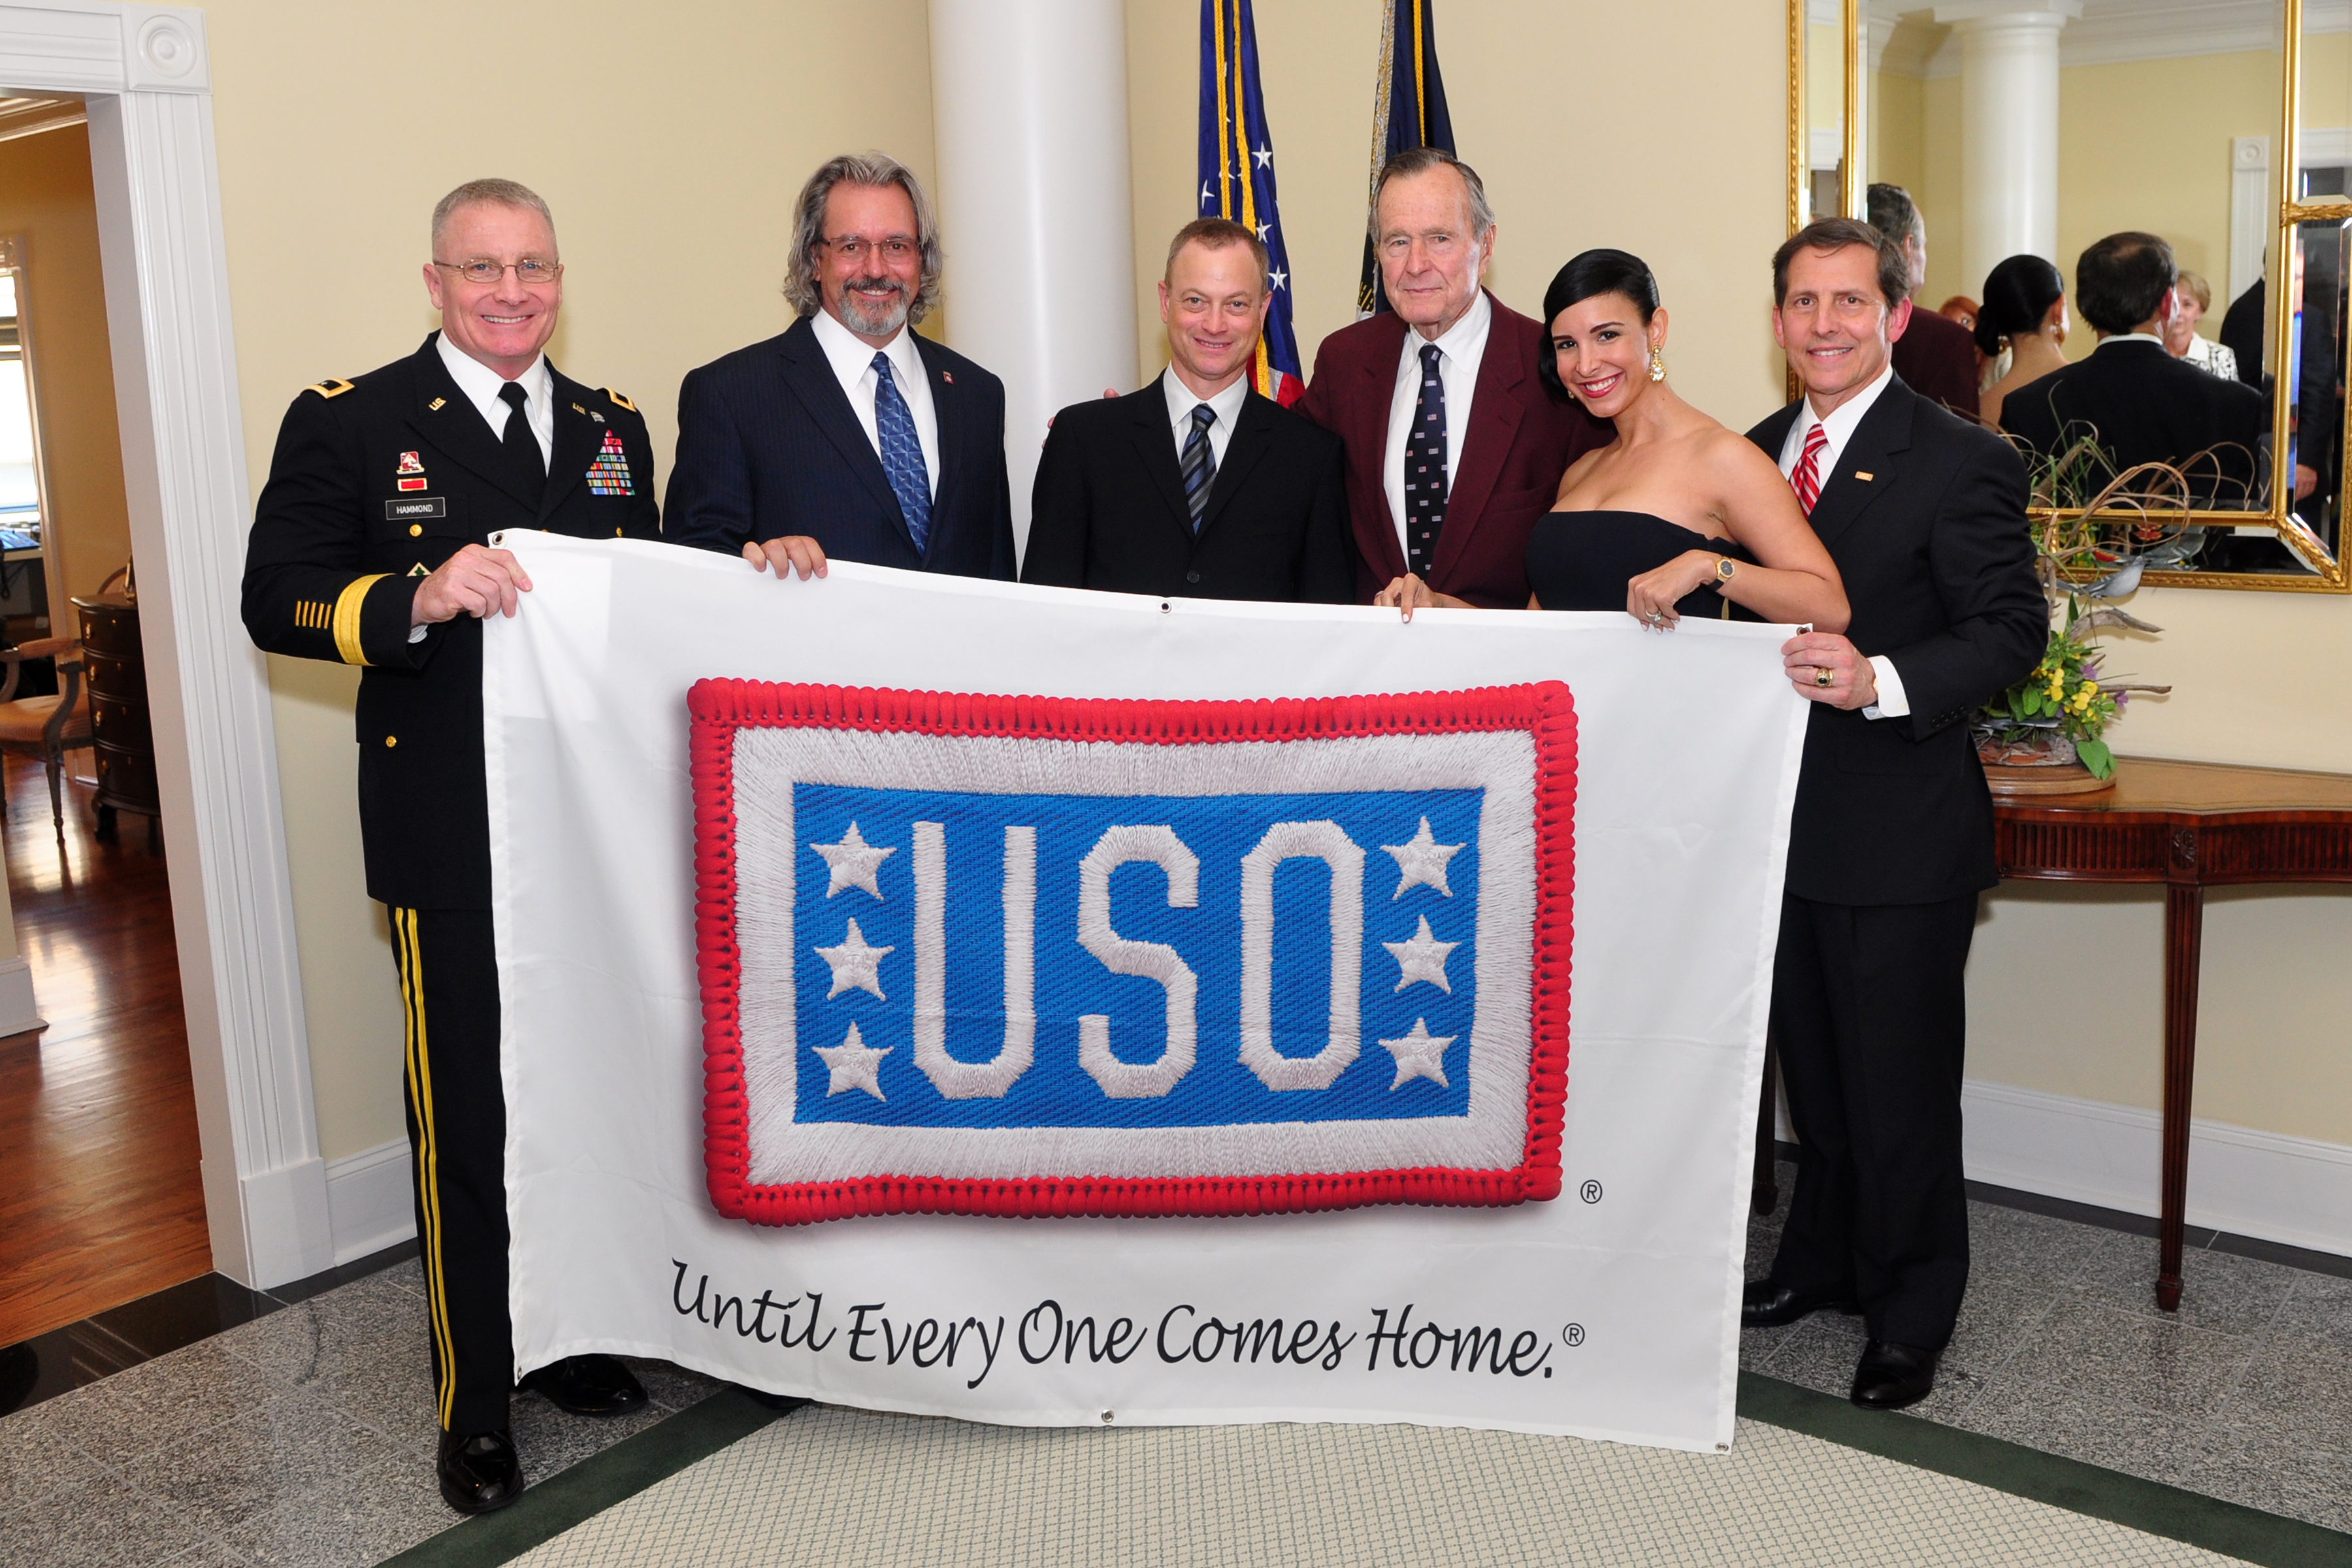 c-span uso forum from bush library